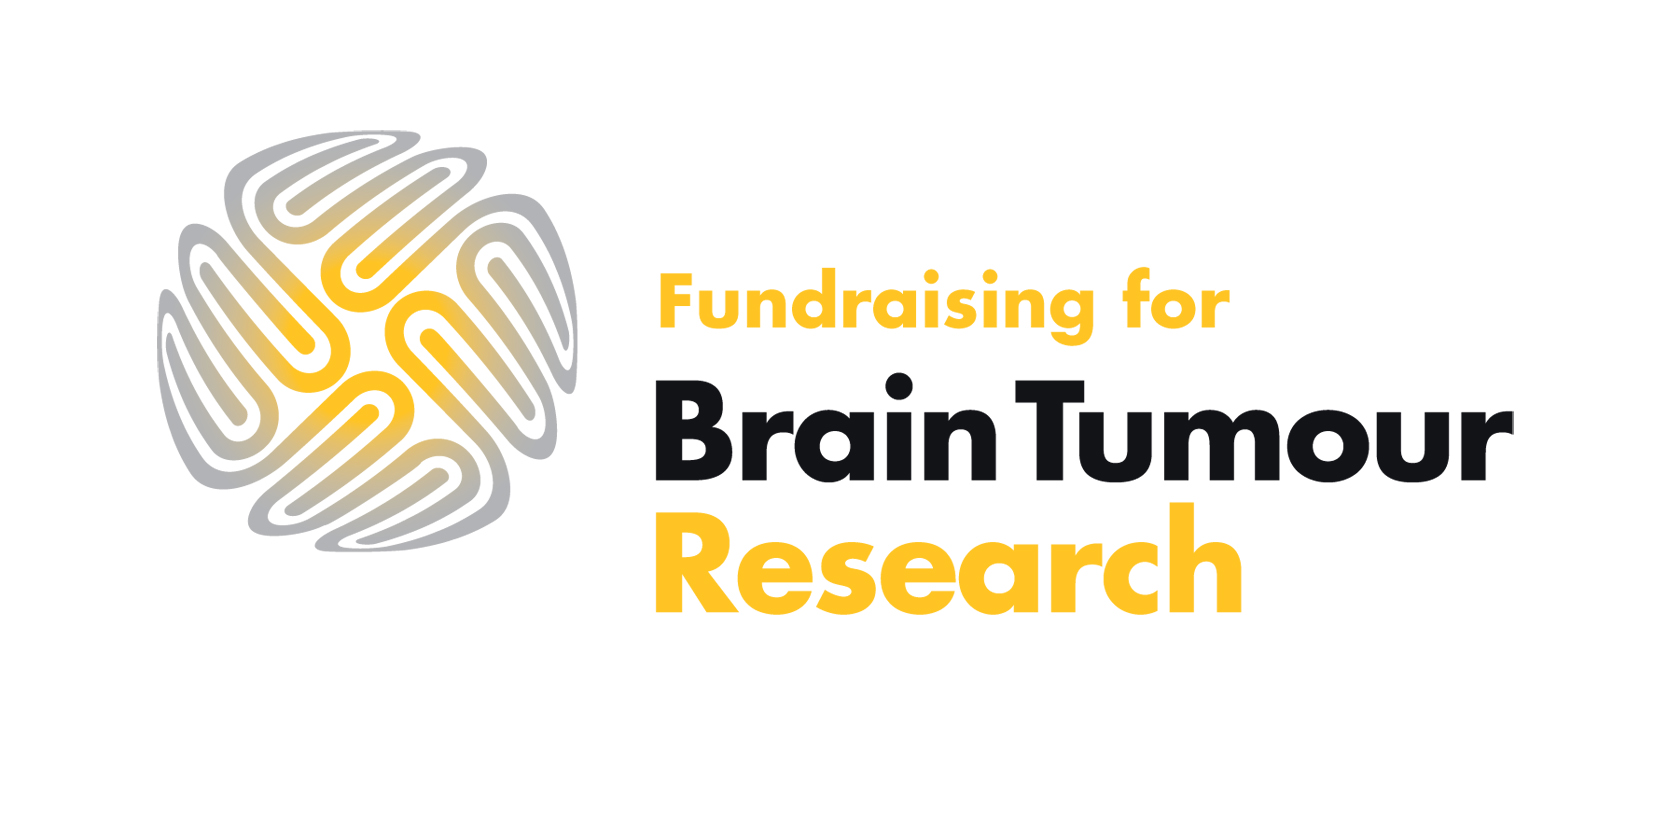 Brain Tumour Research- Li's chosen charity